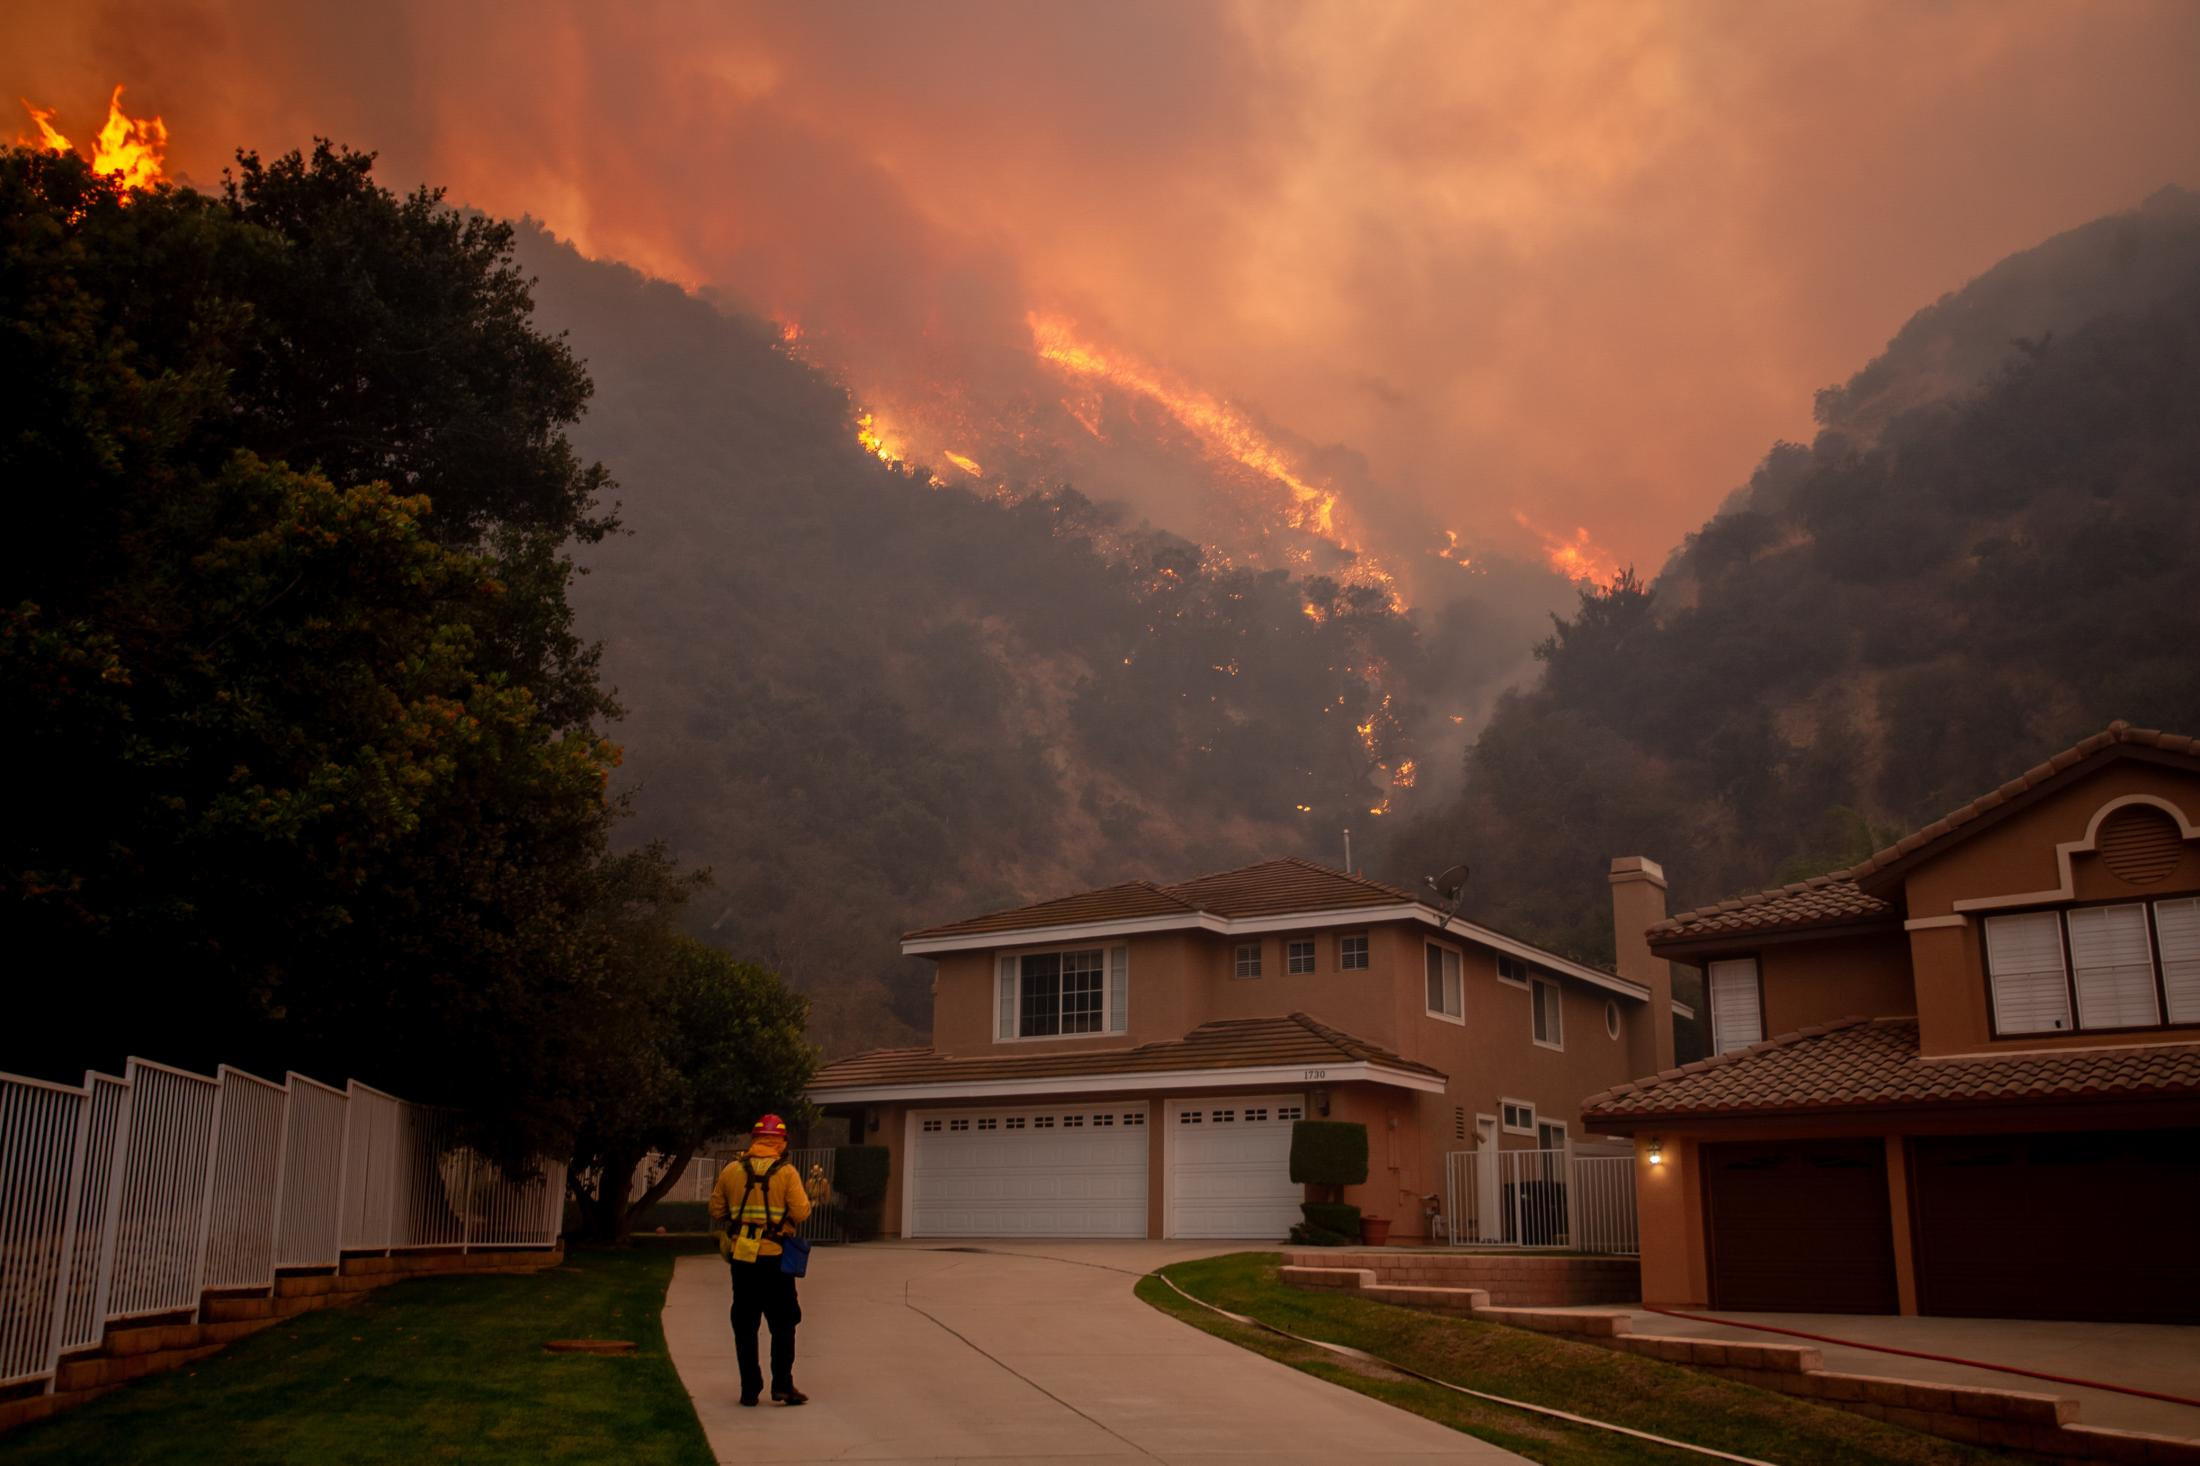 A firefighter moves towards a house that sits on the frontline of a wildfire. Fires move quickly, and as winds pick up, the flames can change directions in seconds.